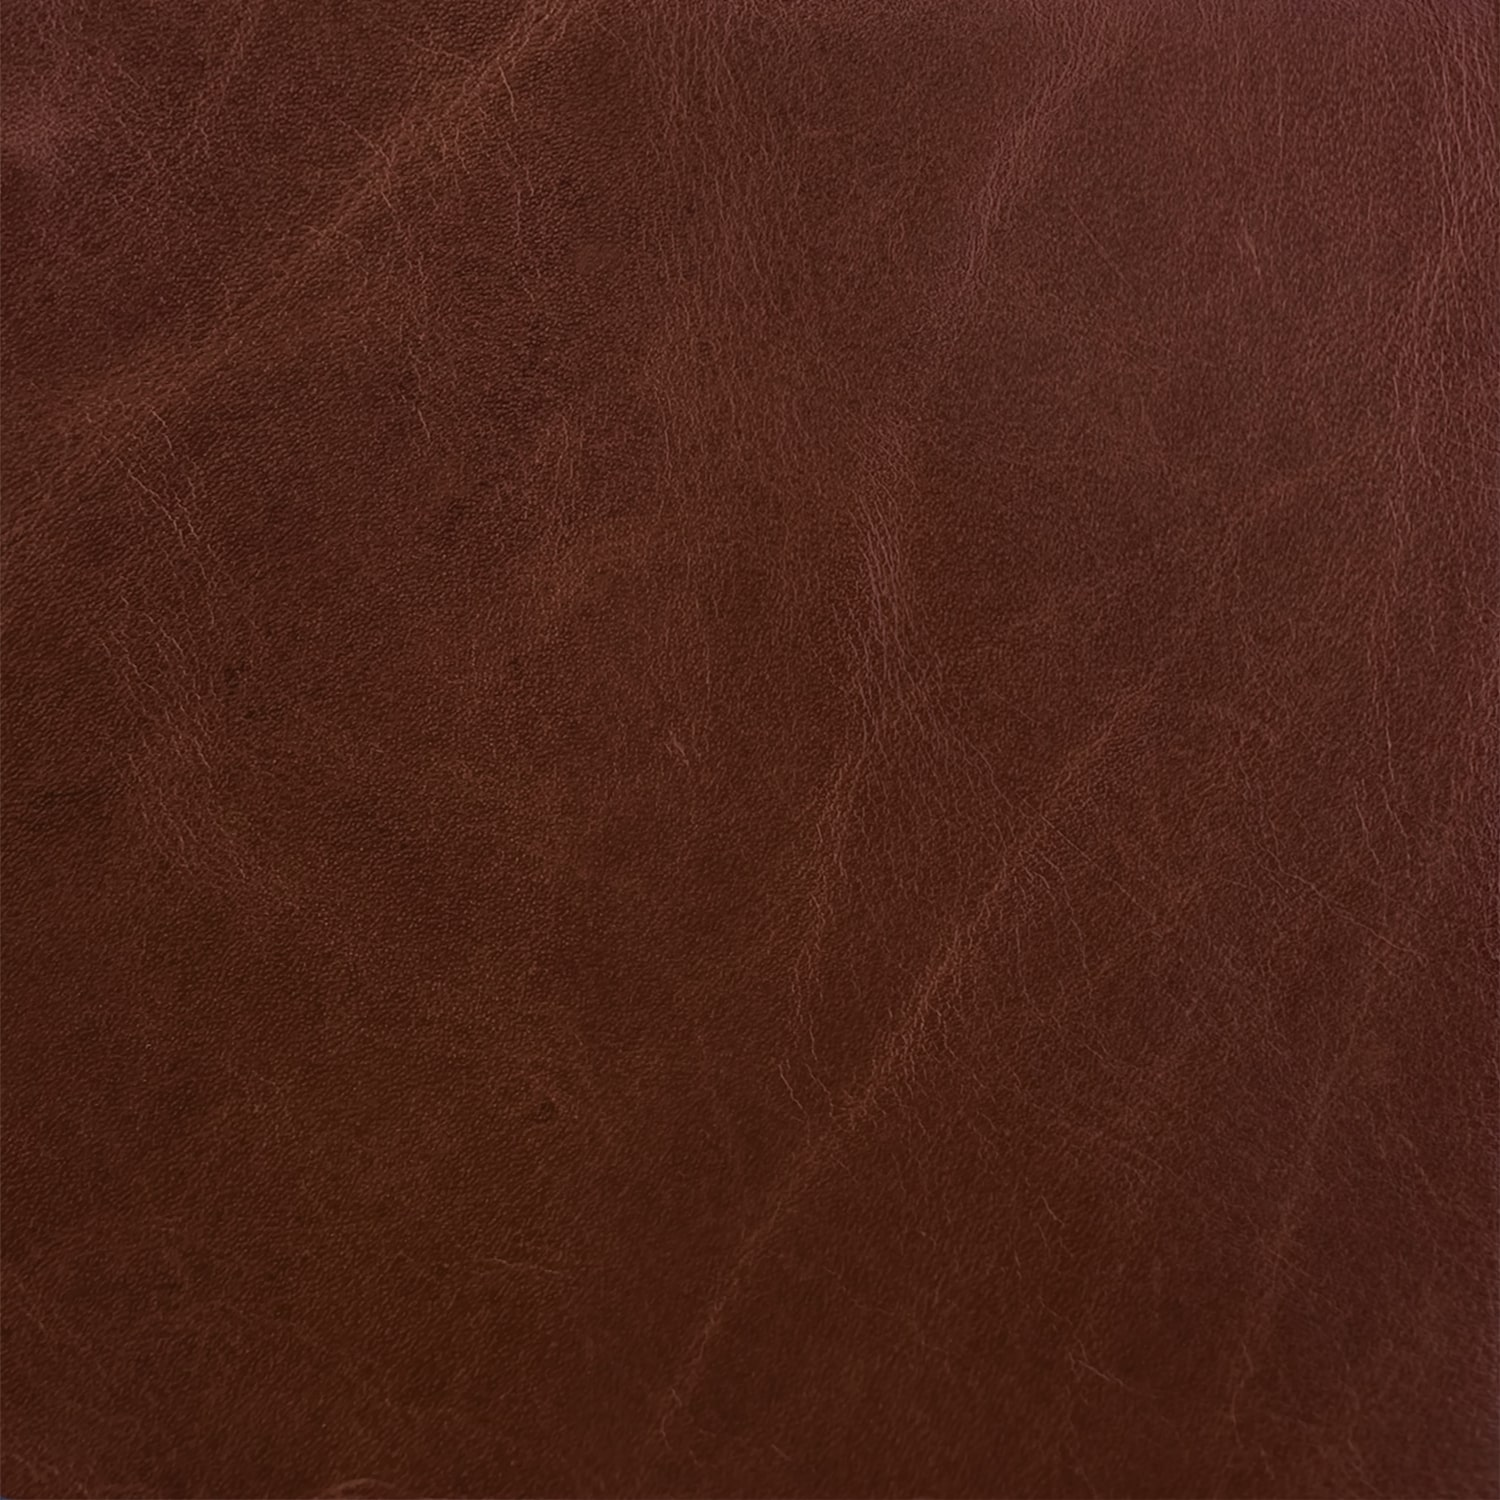 Flagstaff: Caramel (grade G): #FLG1812<br>Unique distressed markings, permiated with wax, rich vibrant color; light protection